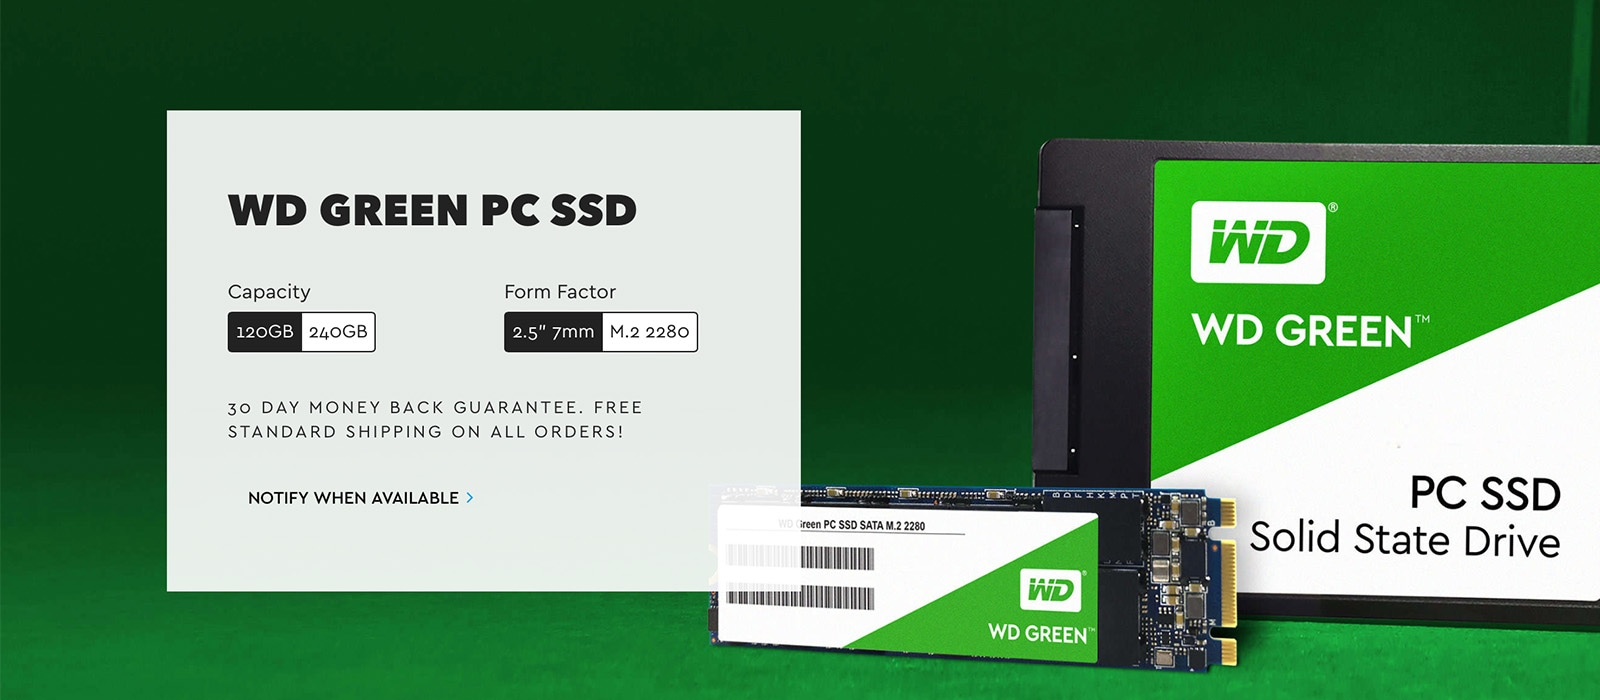 Western Digital WD Green PC SSD